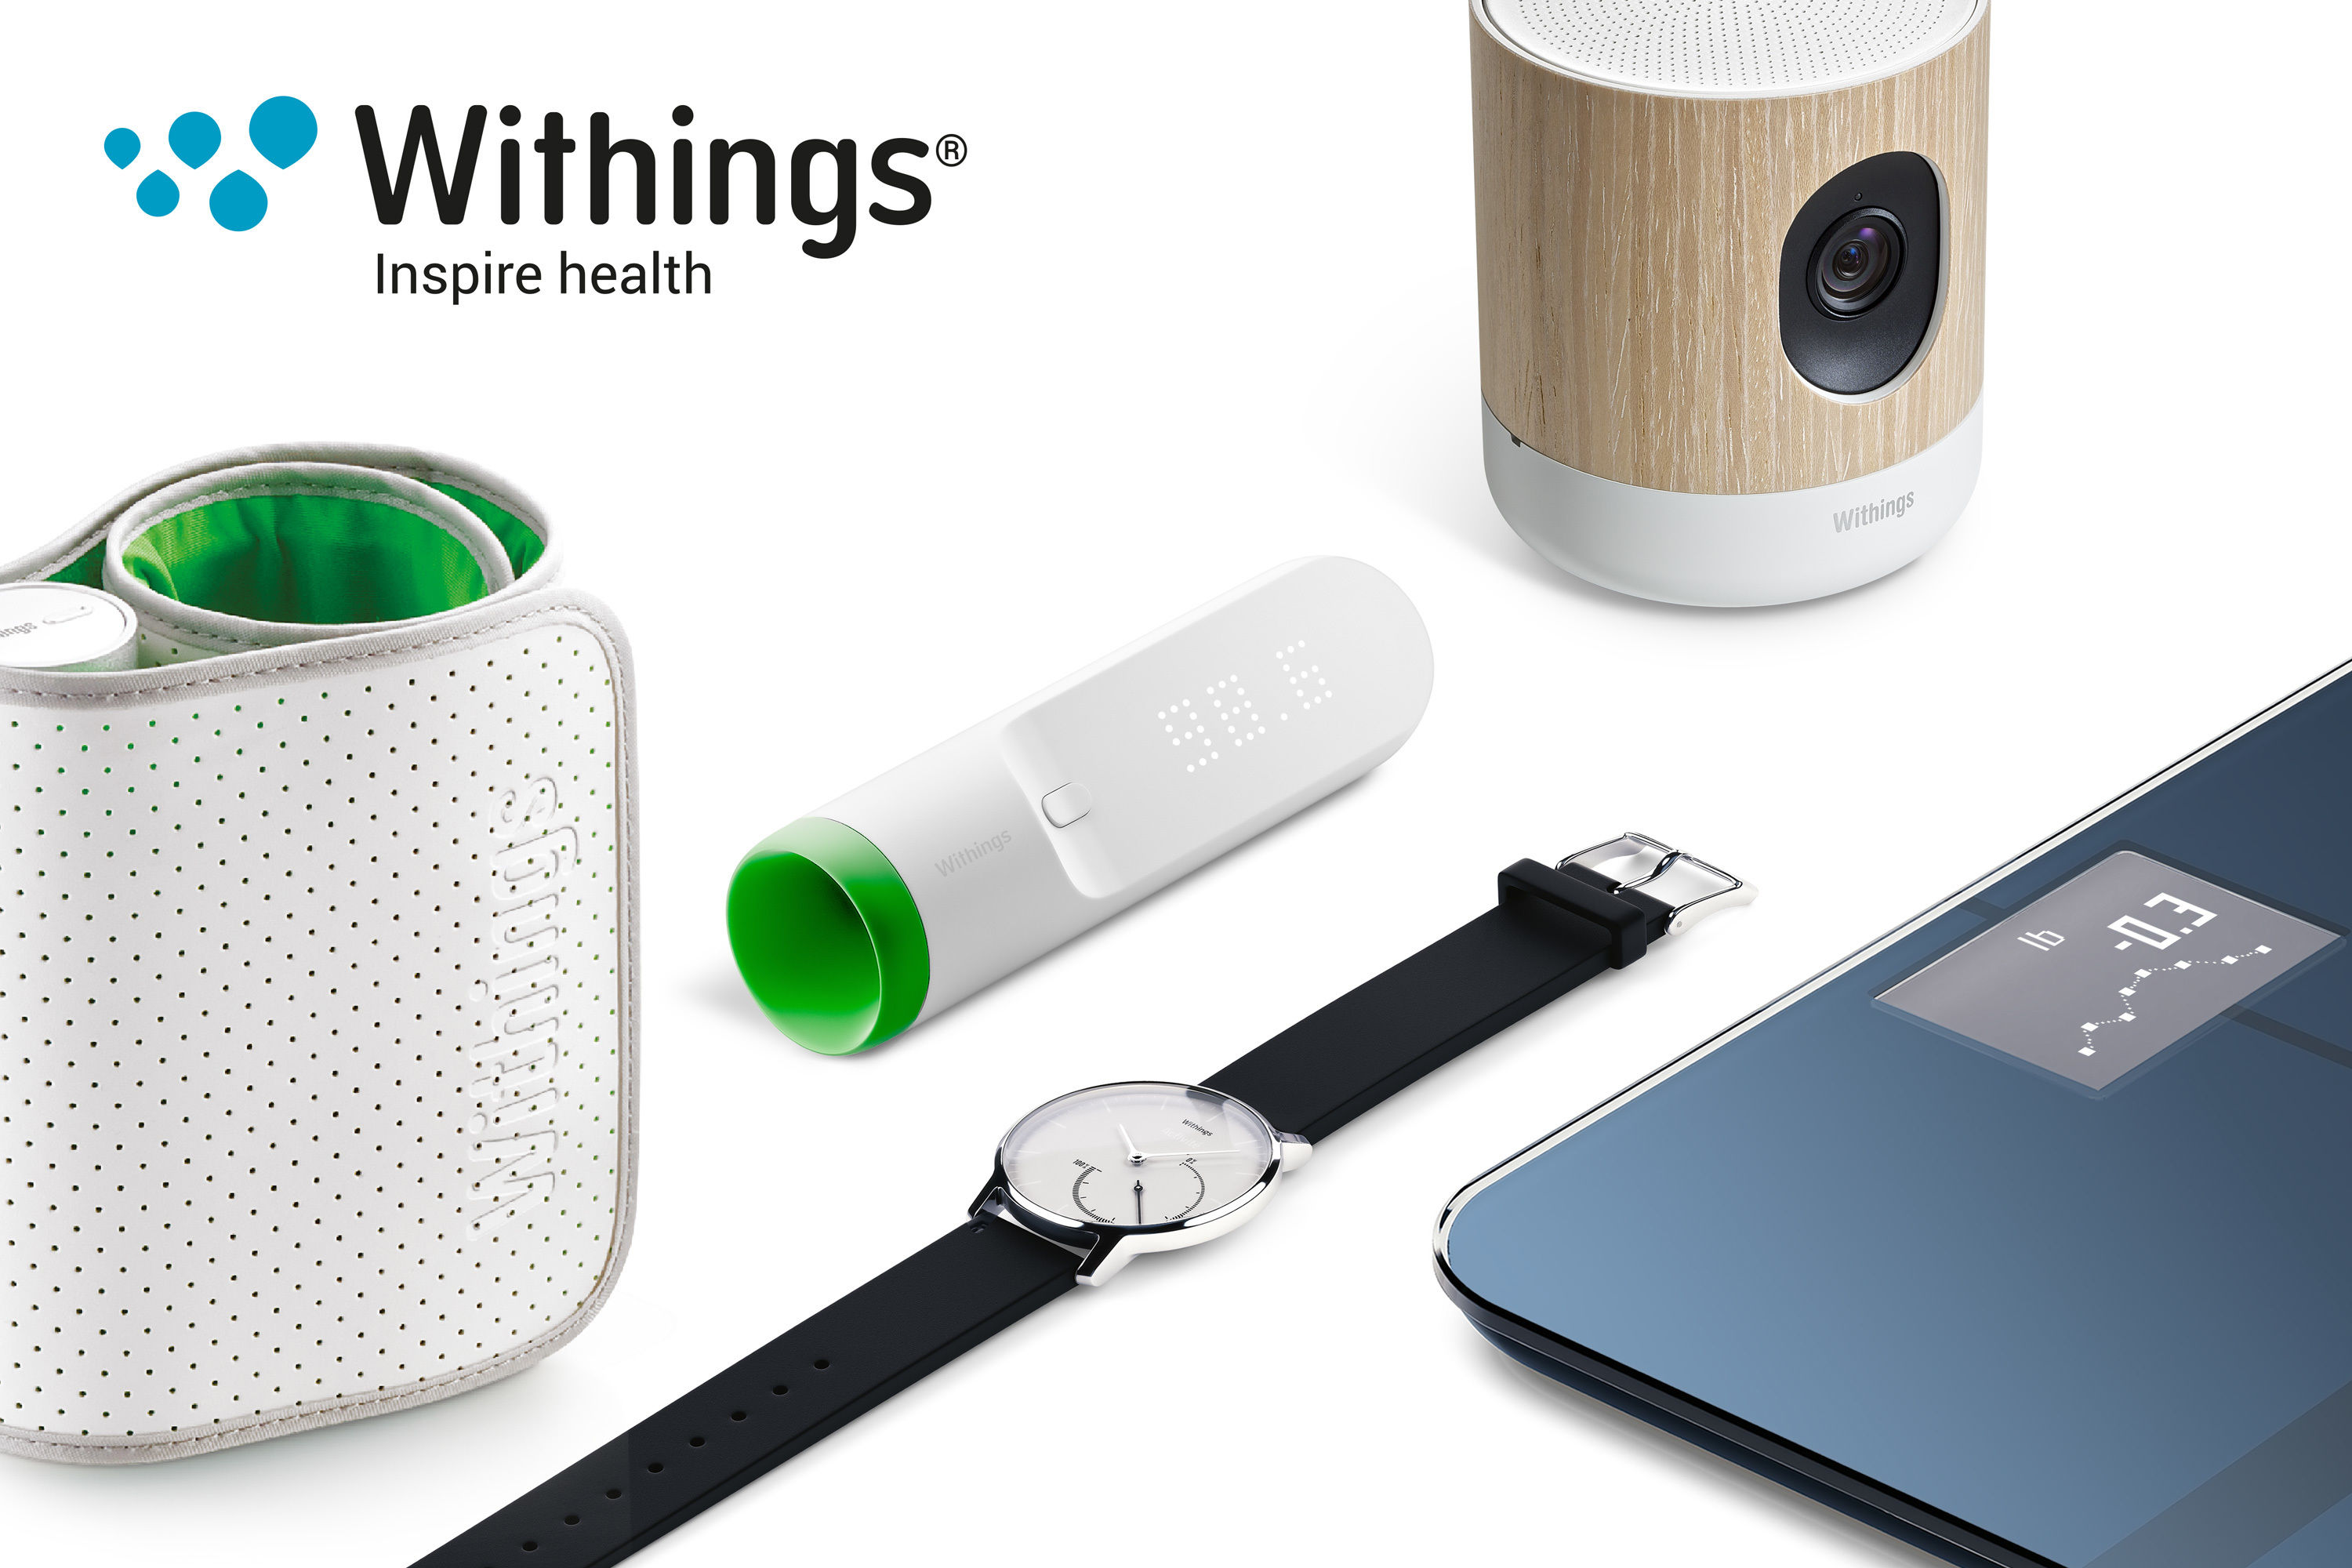 withings-ecosystem-hd.jpg